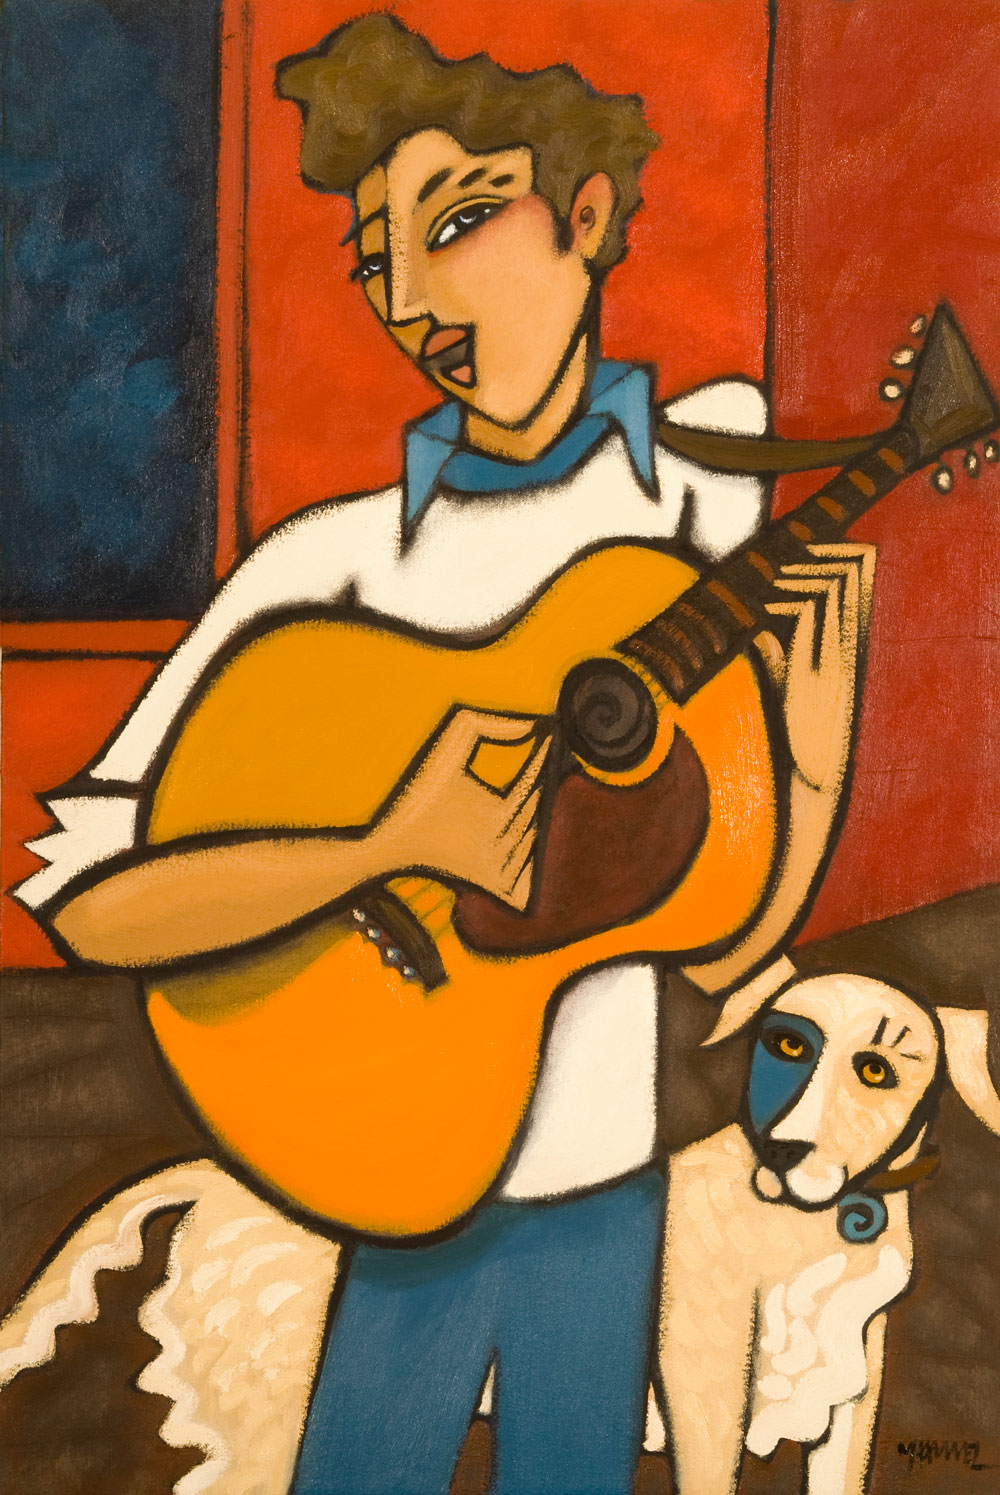 00198-Troubador-with-Chick-Magnet_2011.jpg